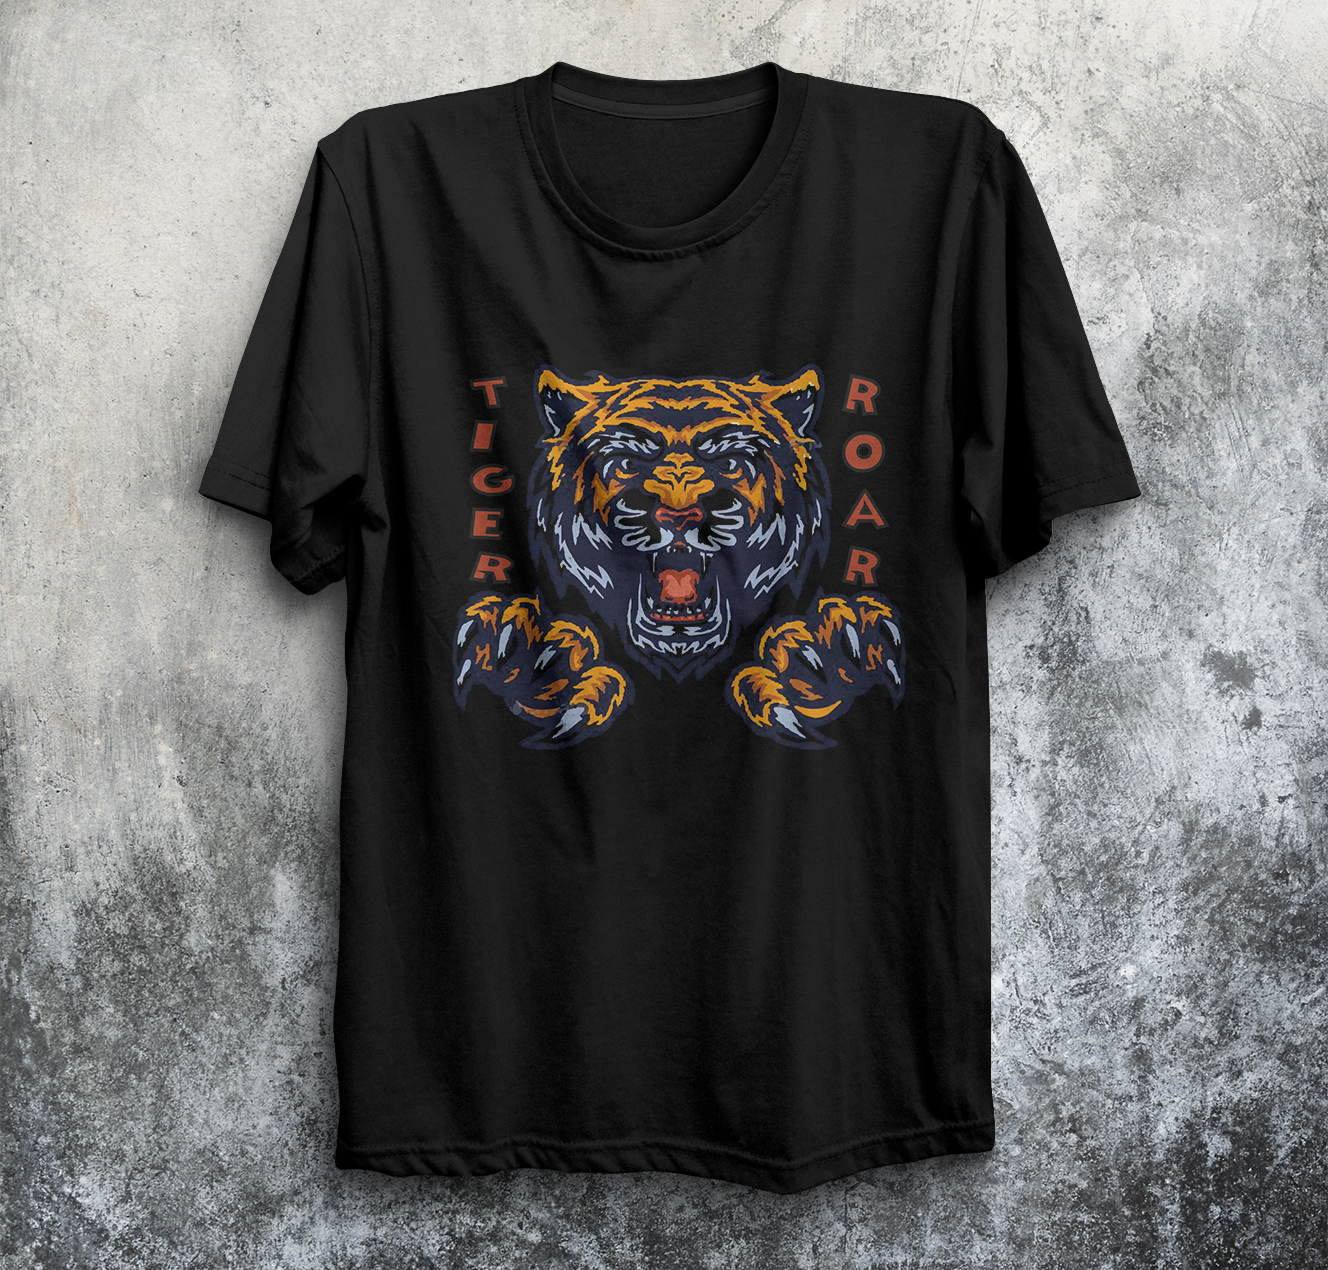 I will provide unique and attractive t shirt design within 6hr